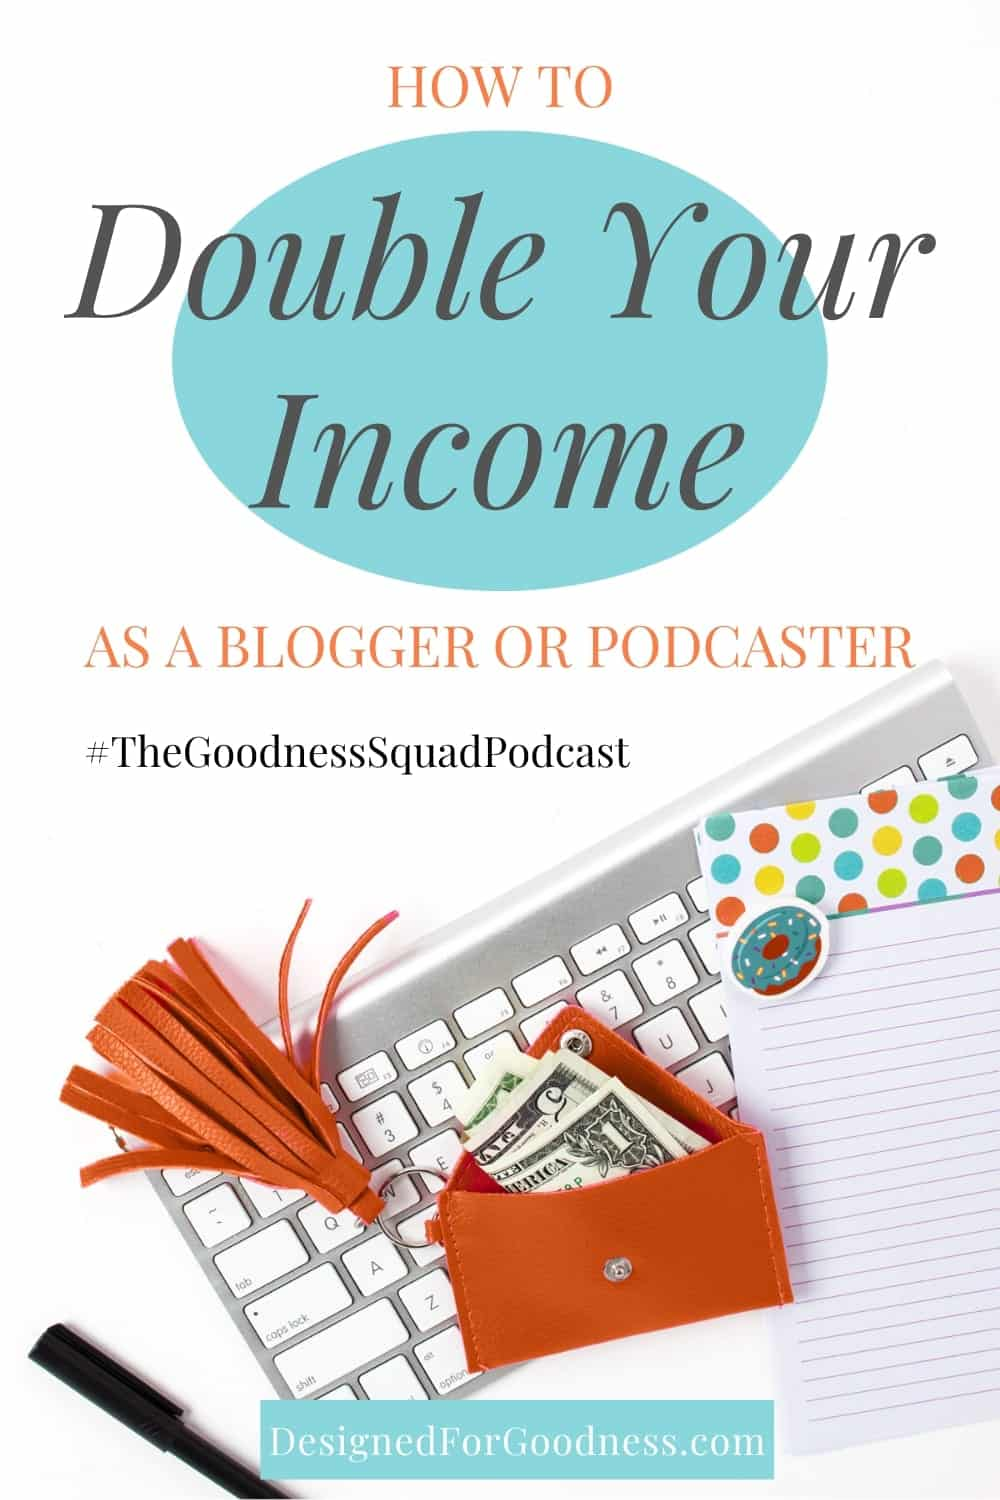 Podcast Episode #2: Double your income